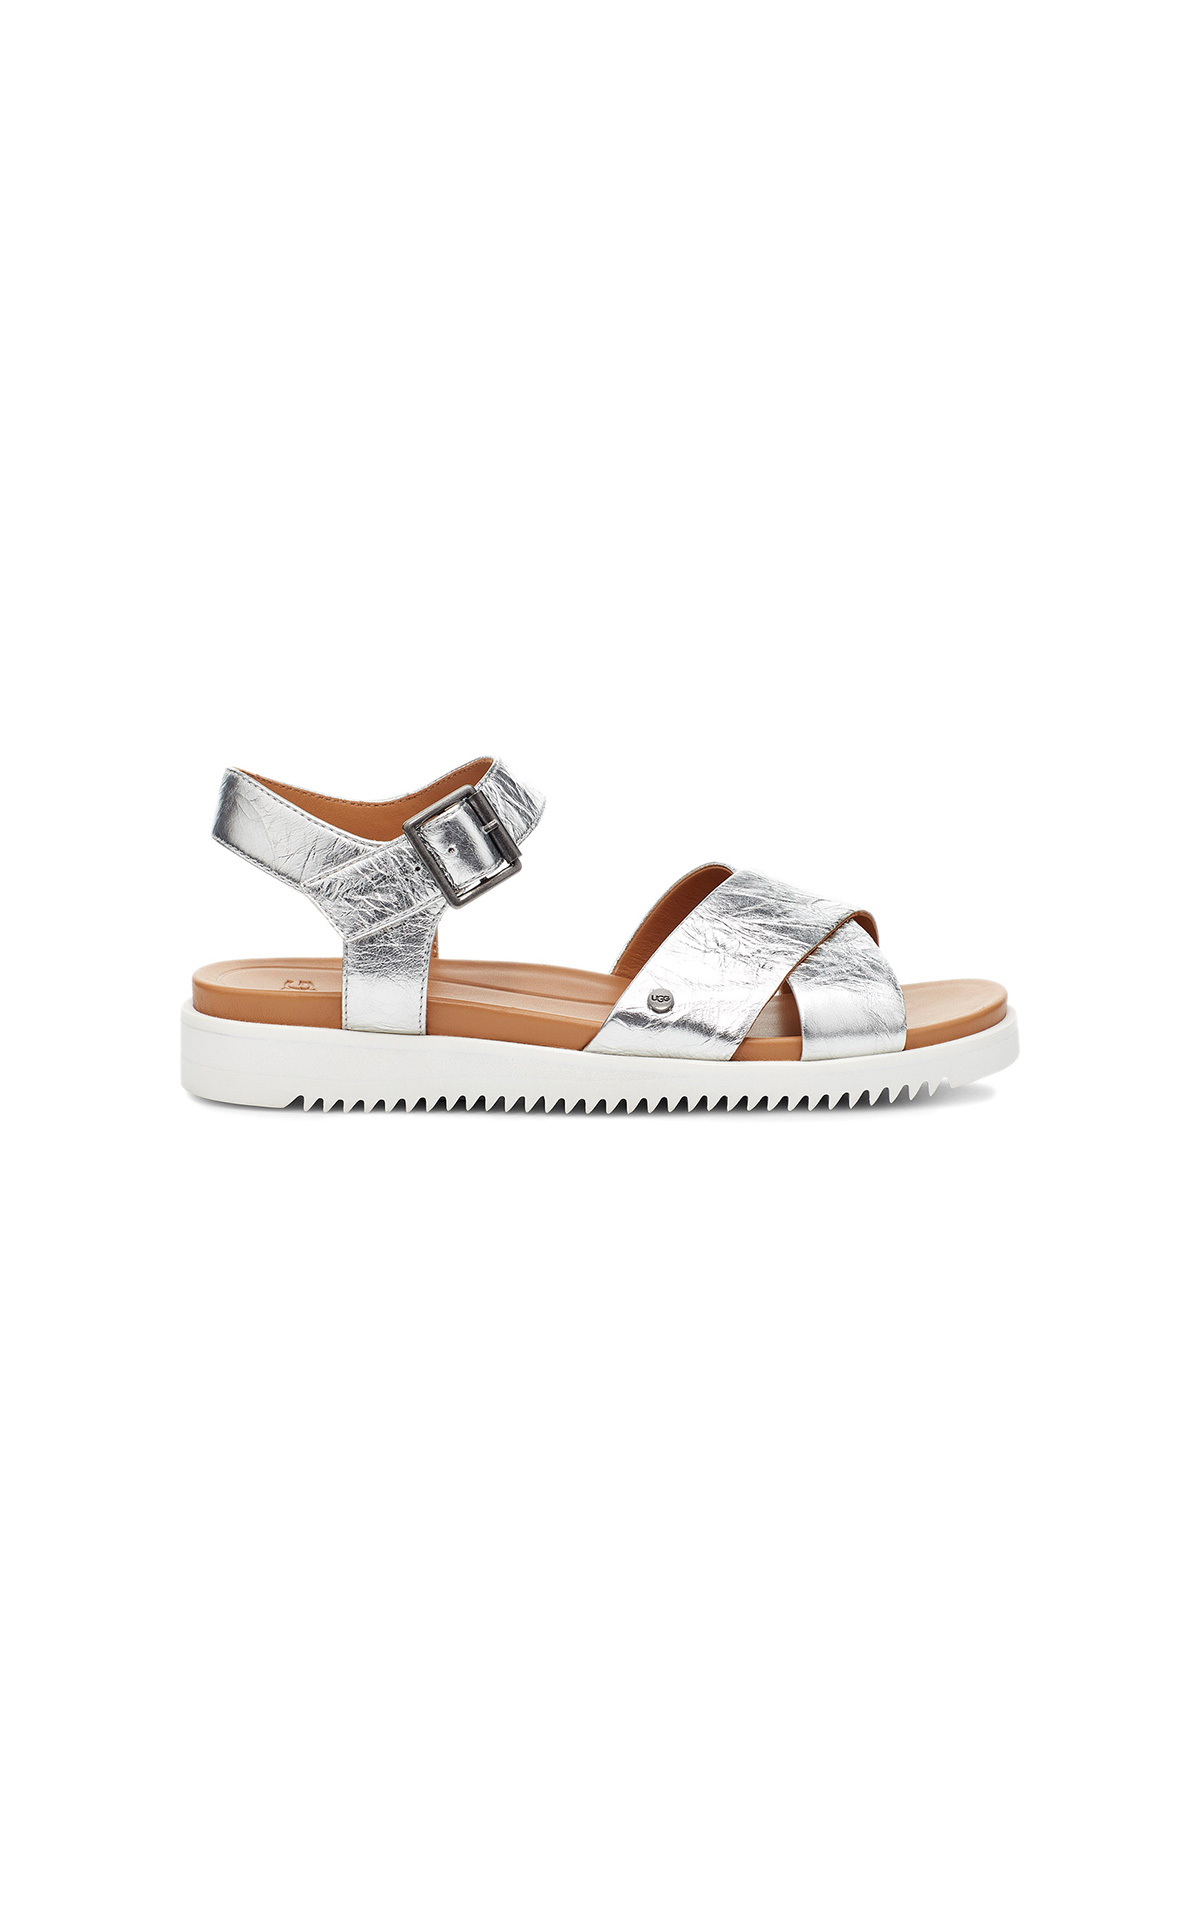 UGG Zoie Metallic Sandal at The Bicester Village Shopping Collection